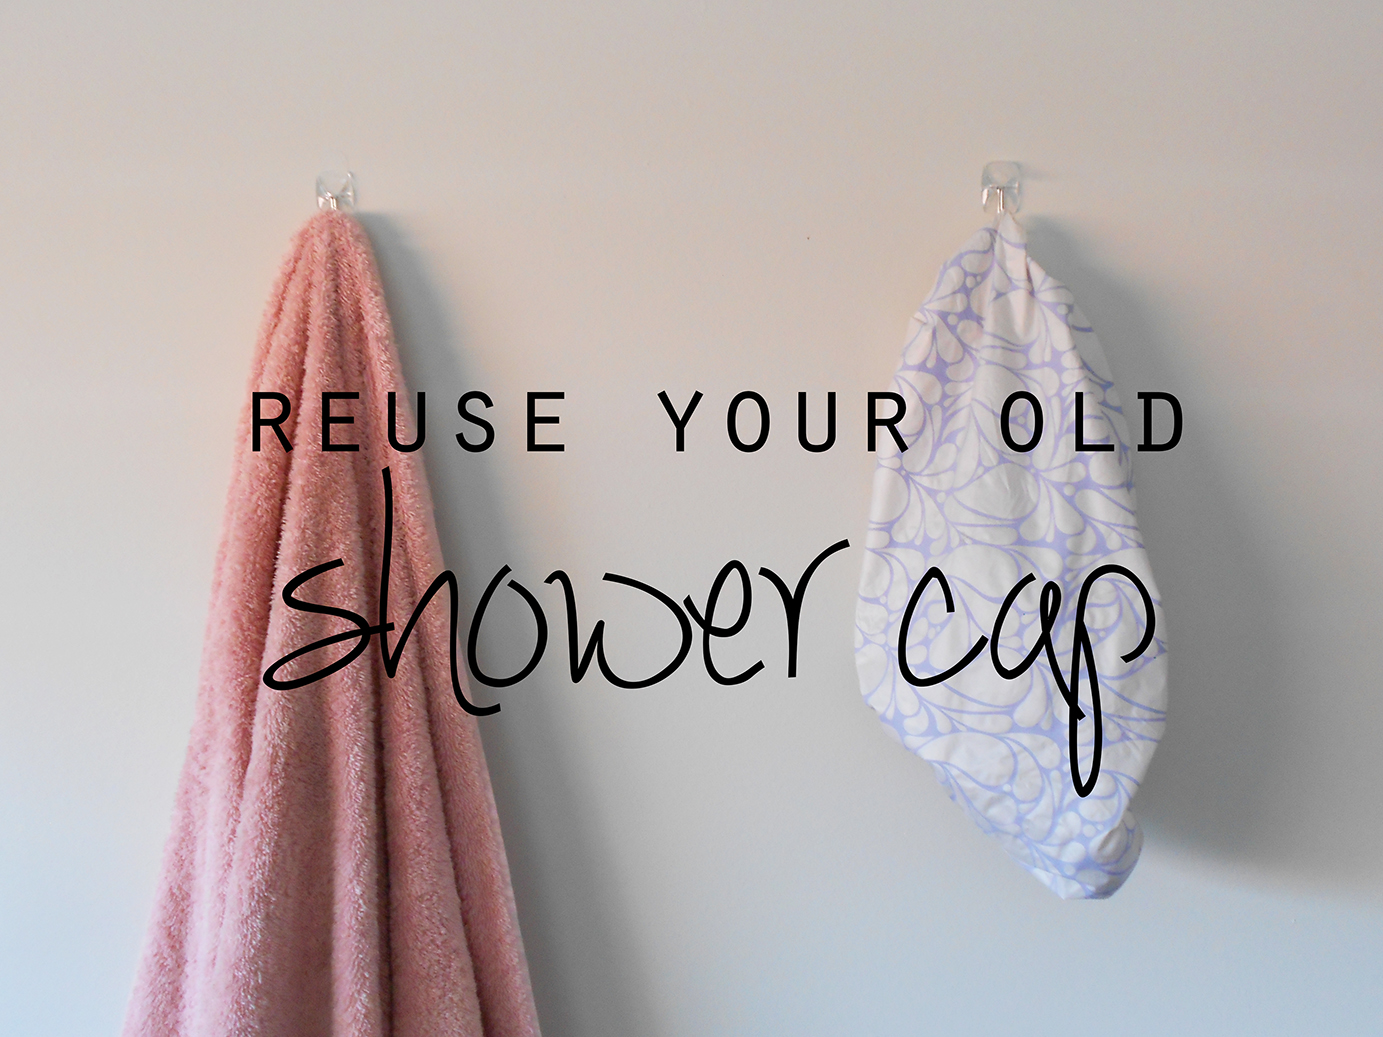 Reuse your old shower cap